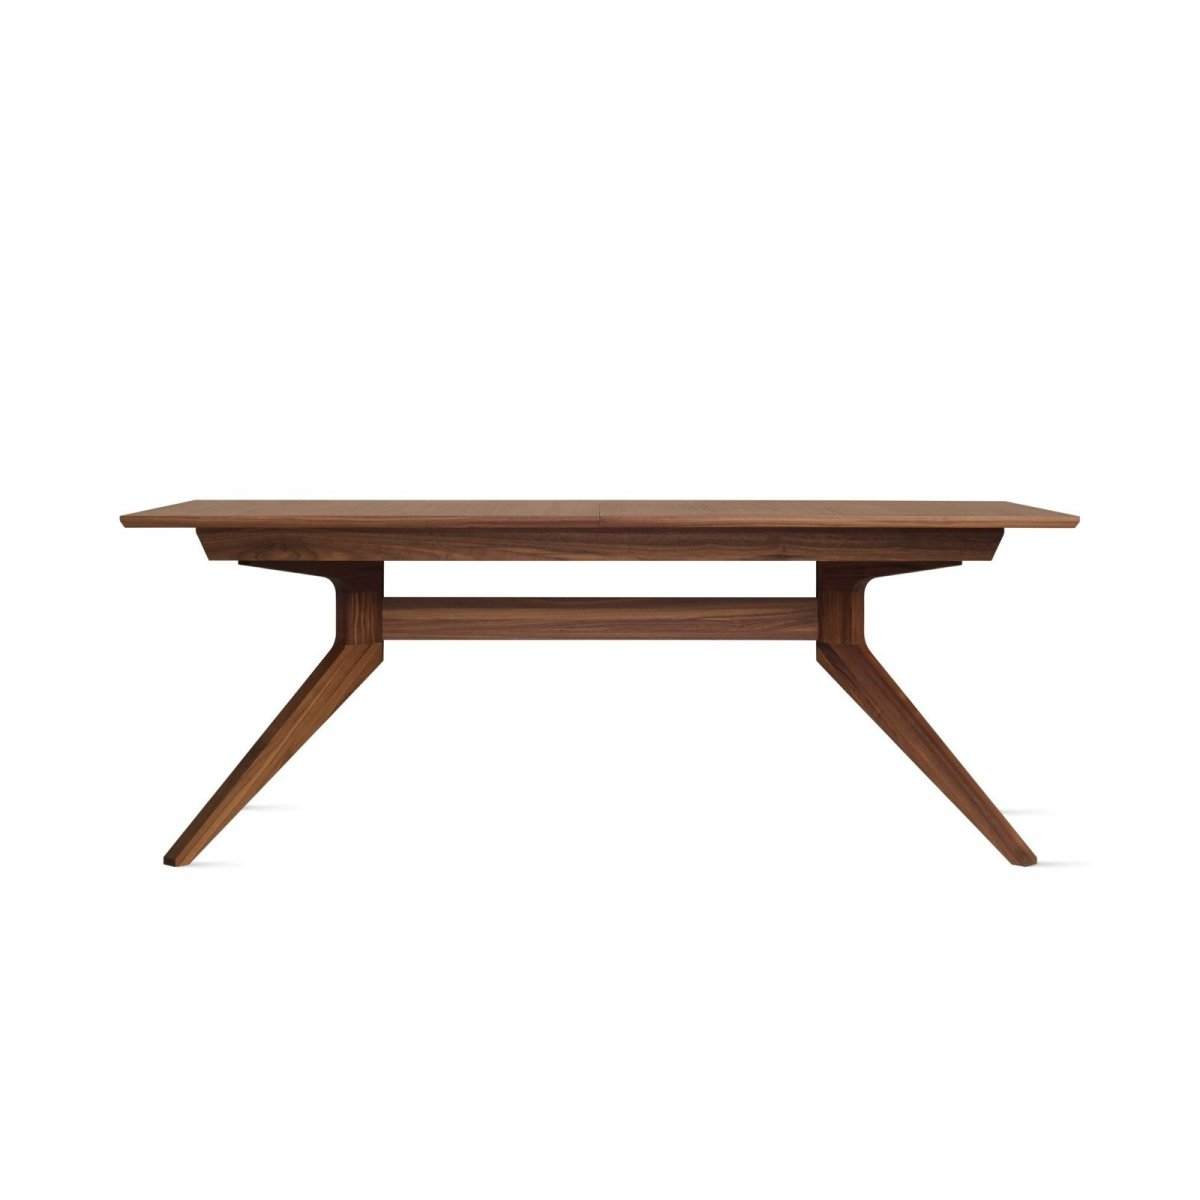 Cross Extending Table, walnut.